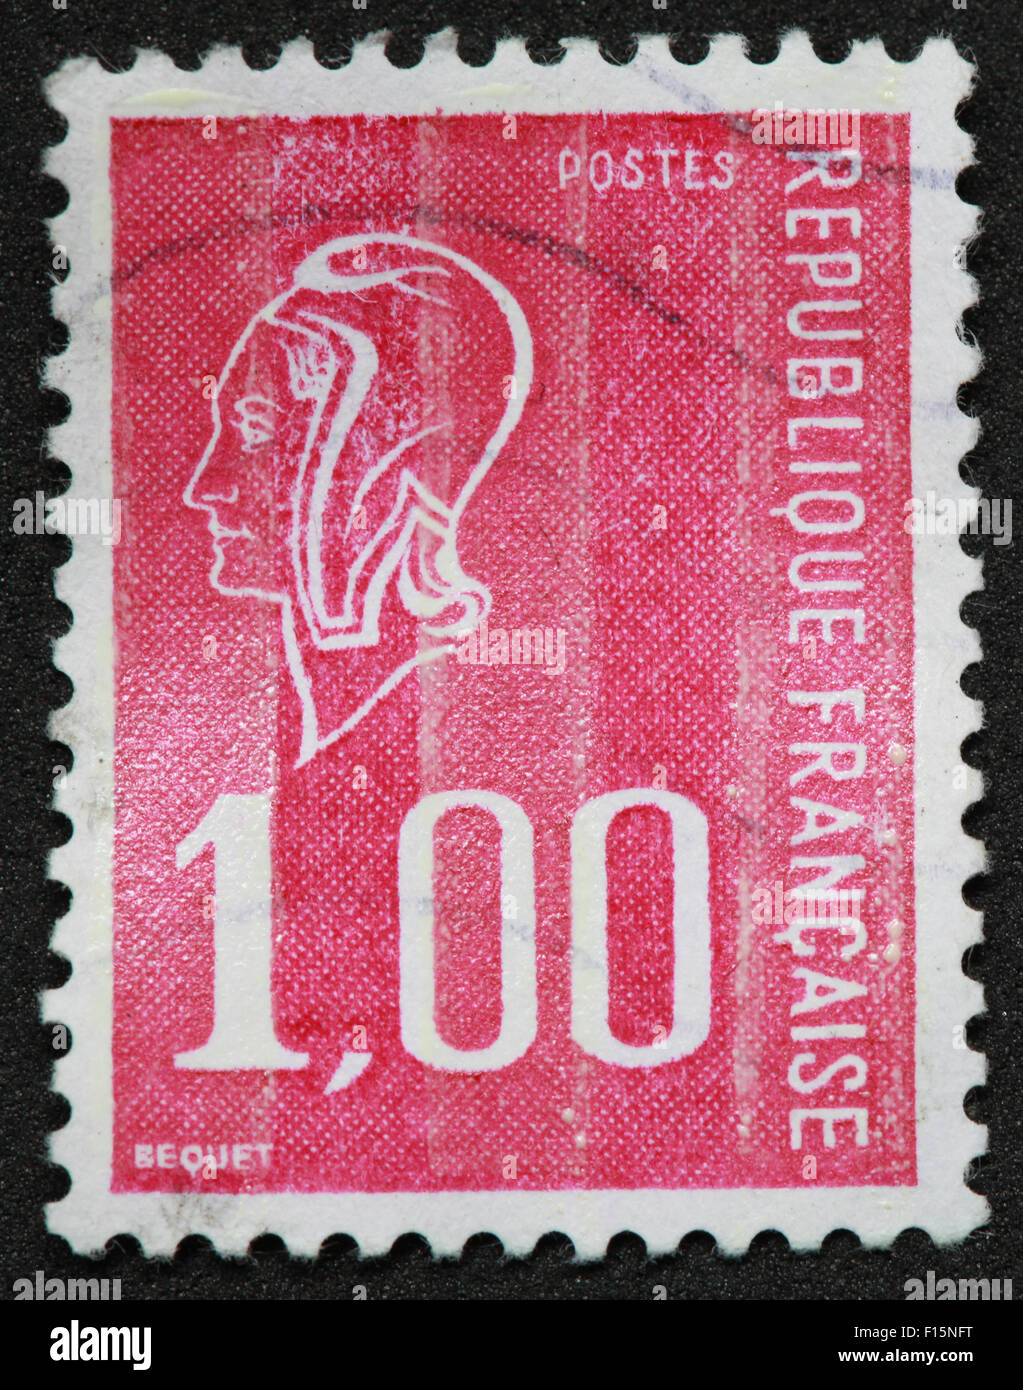 1f 1.00 Postes Republique Francaise BEQUET face pink red Stamp Stock Photo